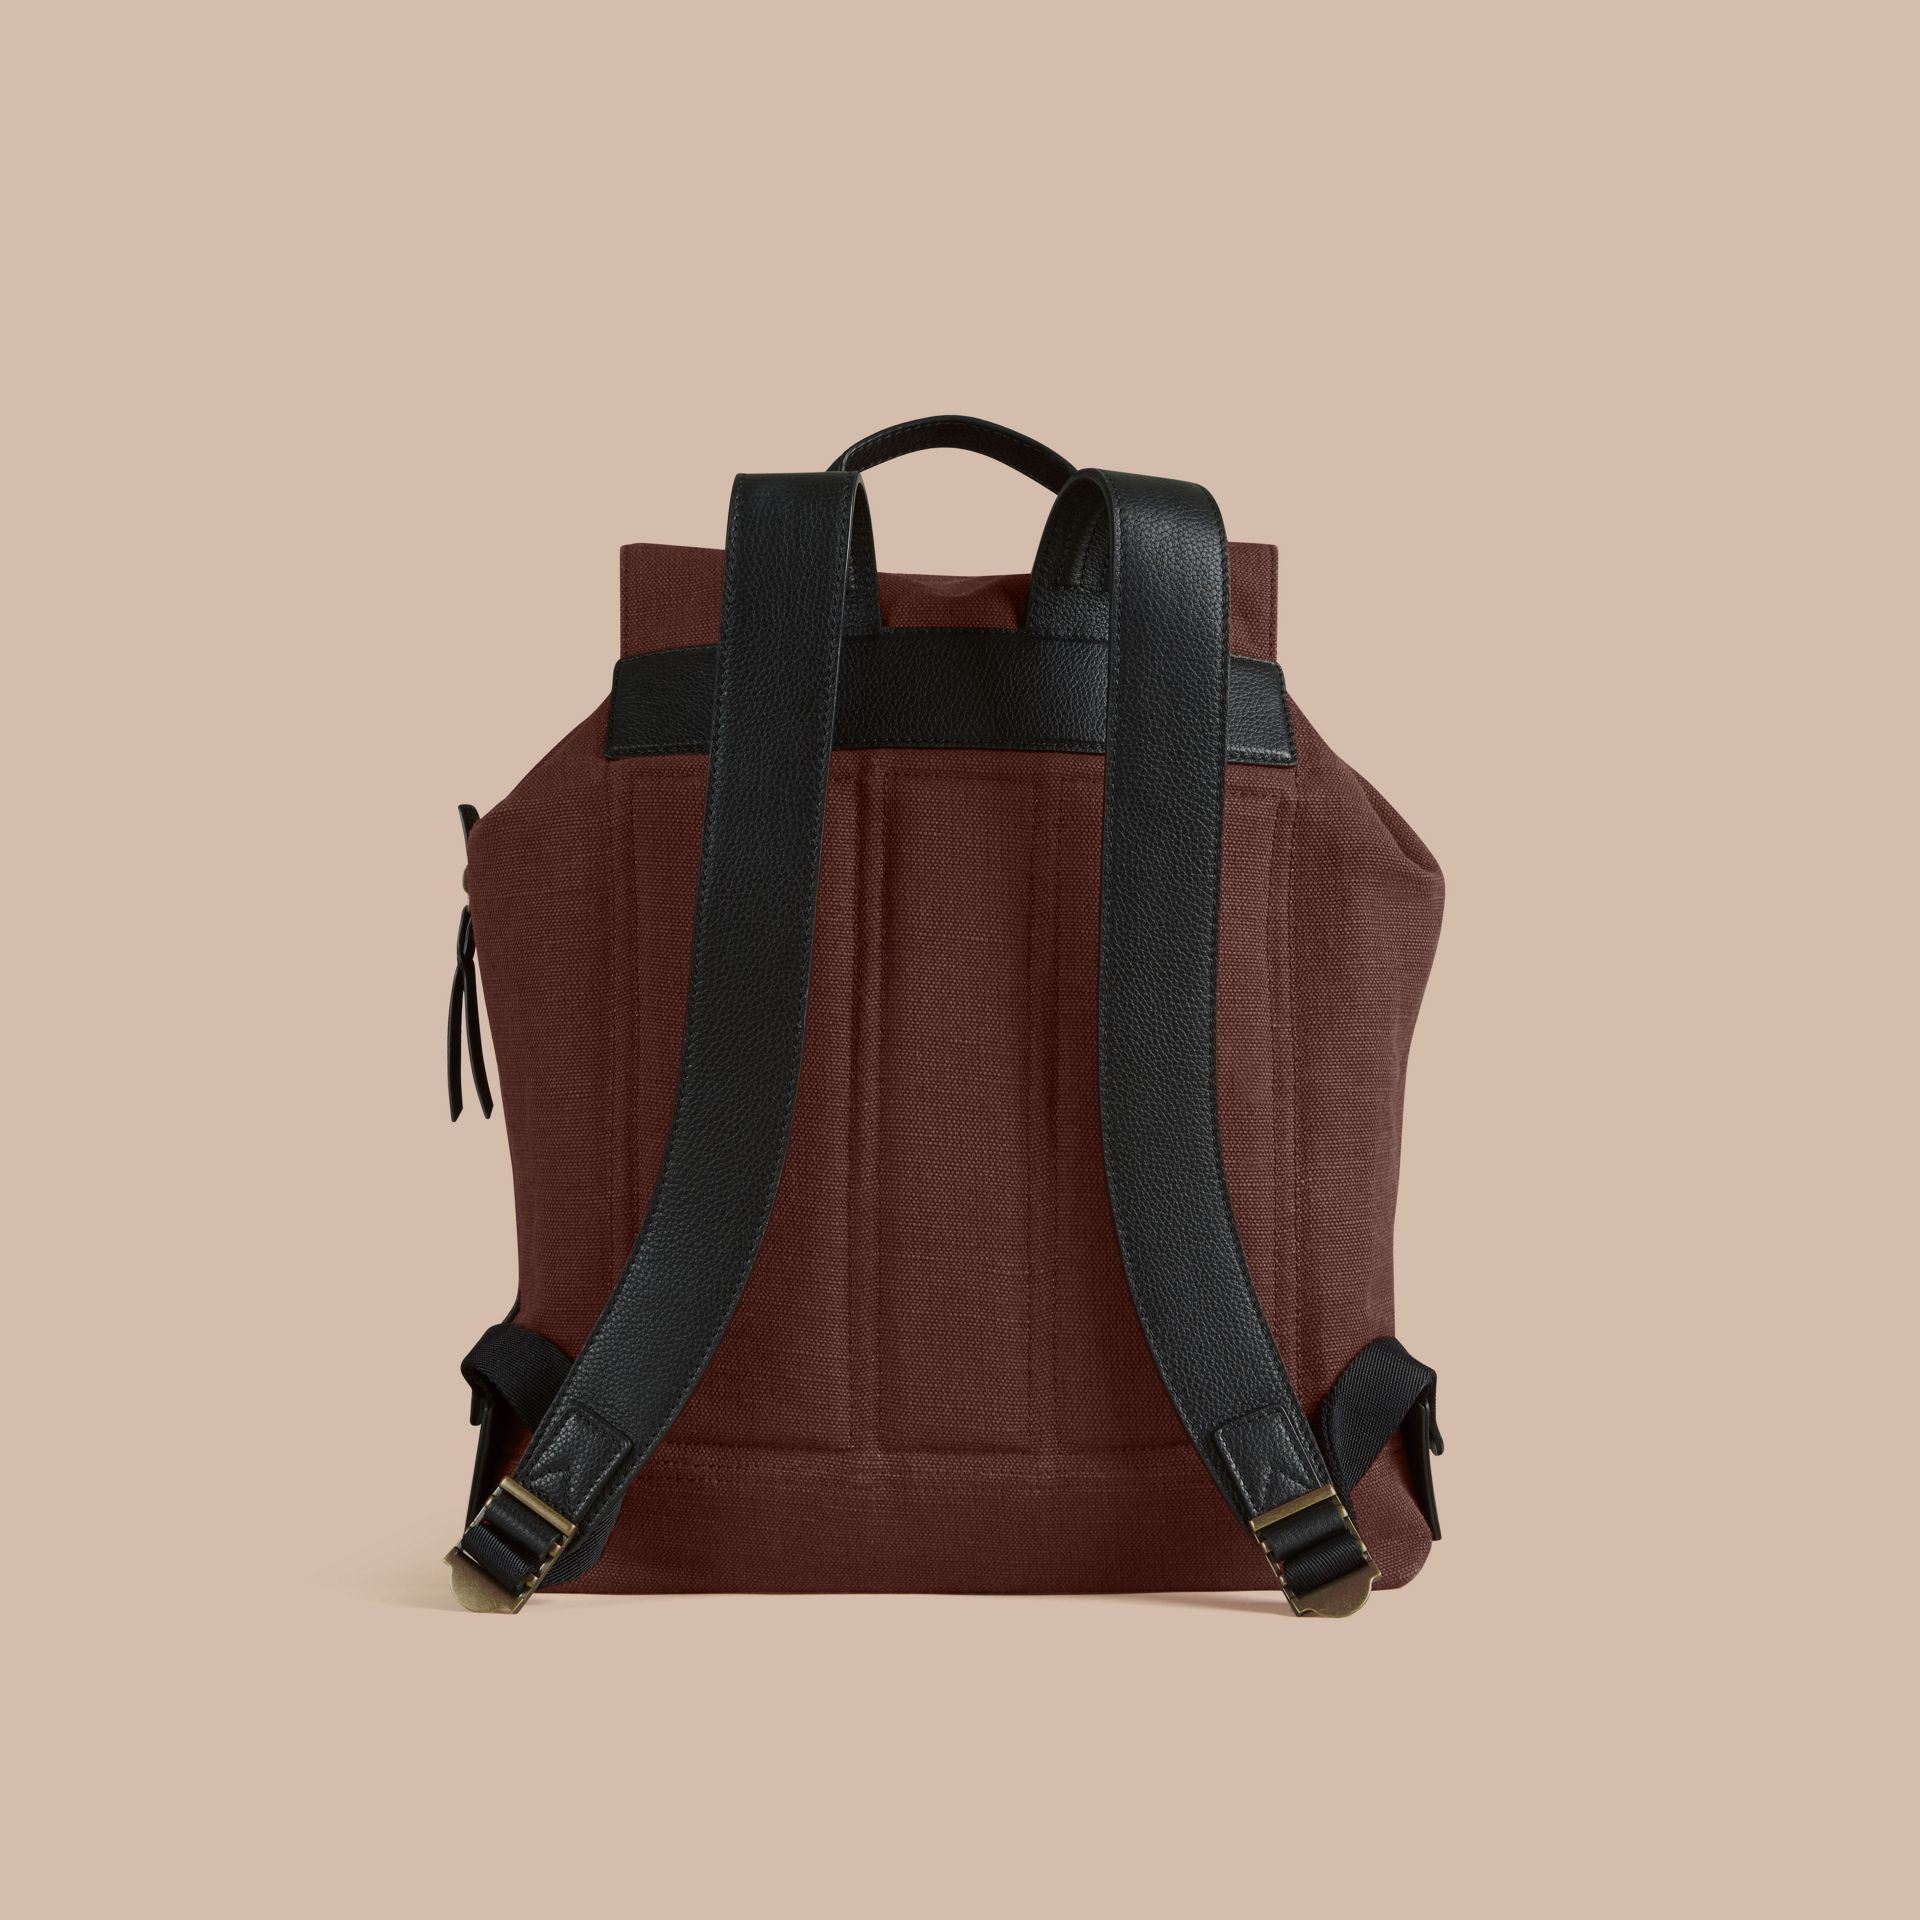 Claret Overdyed Canvas Check Backpack Claret - gallery image 5